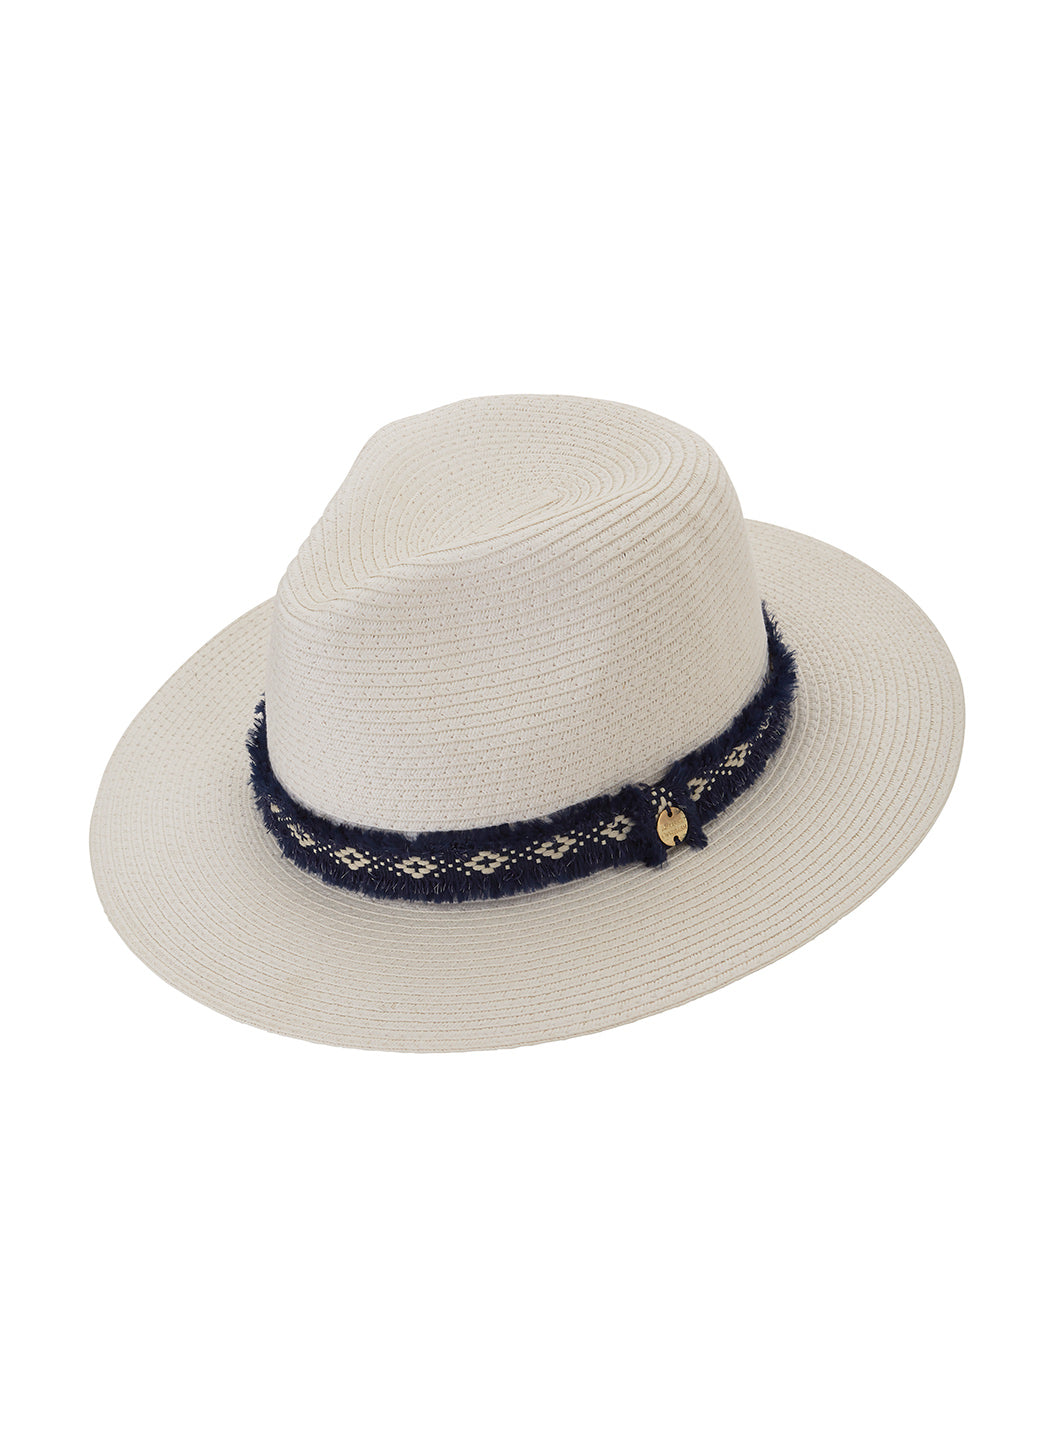 Fedora Hat White/Navy